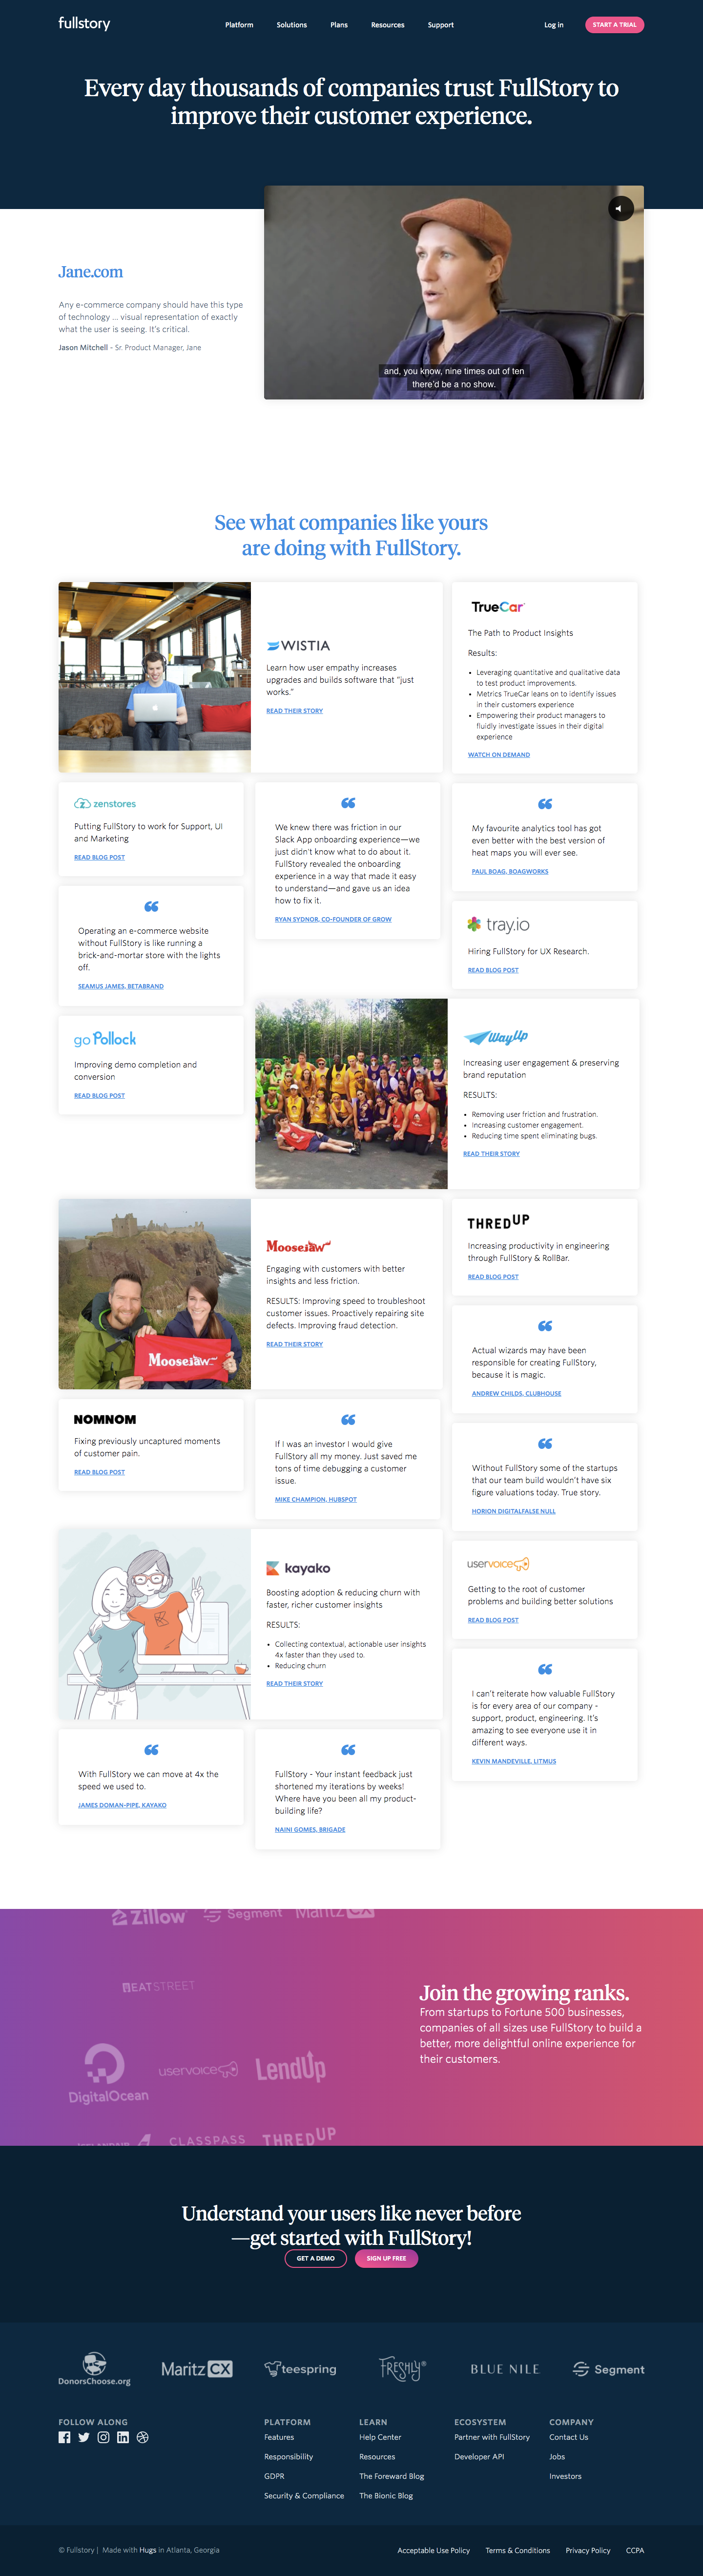 Fullstory Customers Page